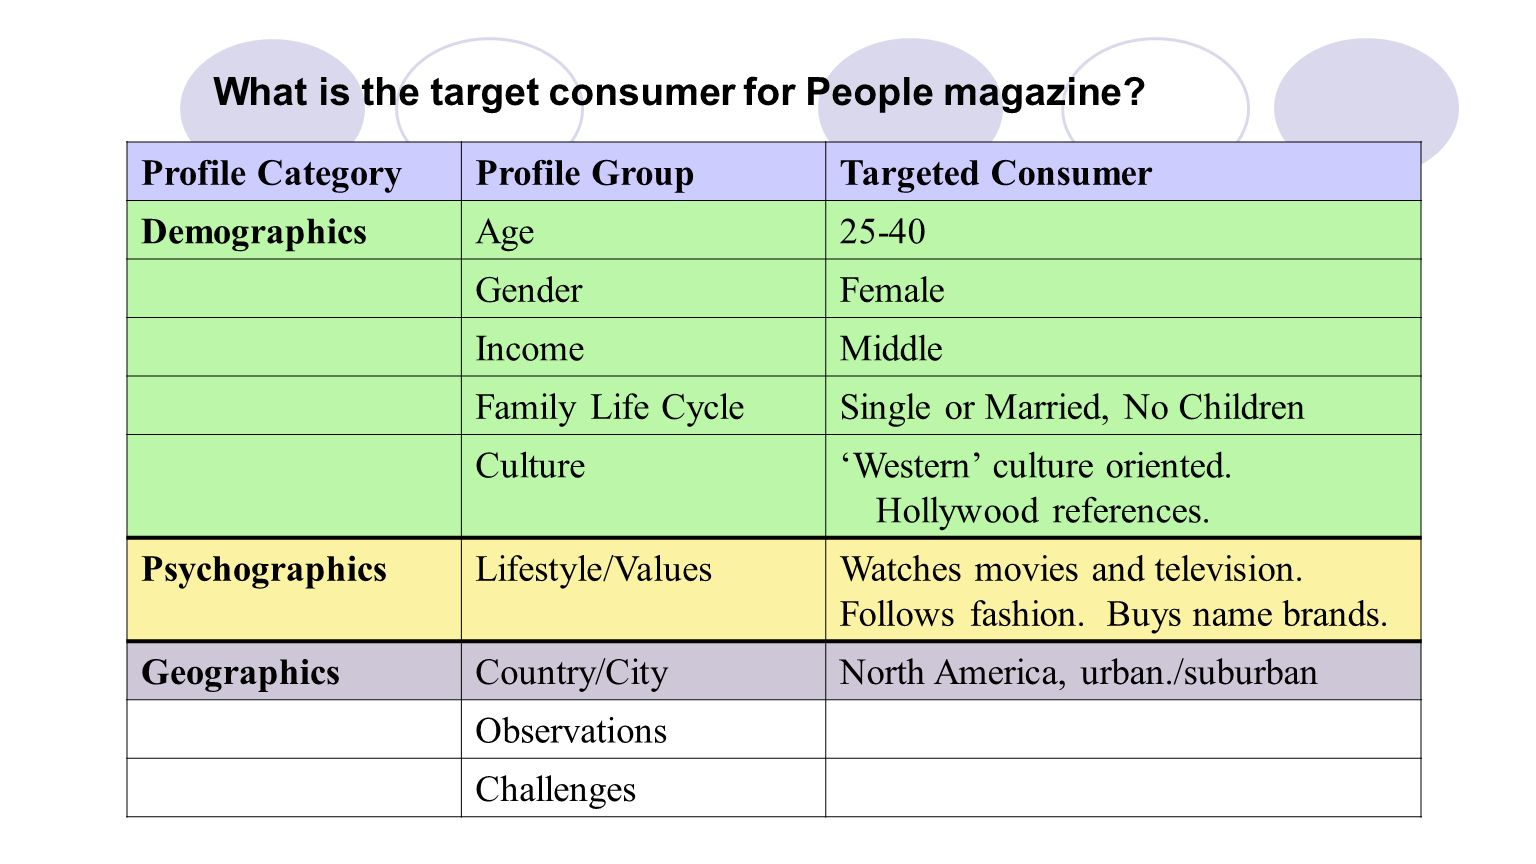 What is the target consumer for People magazine